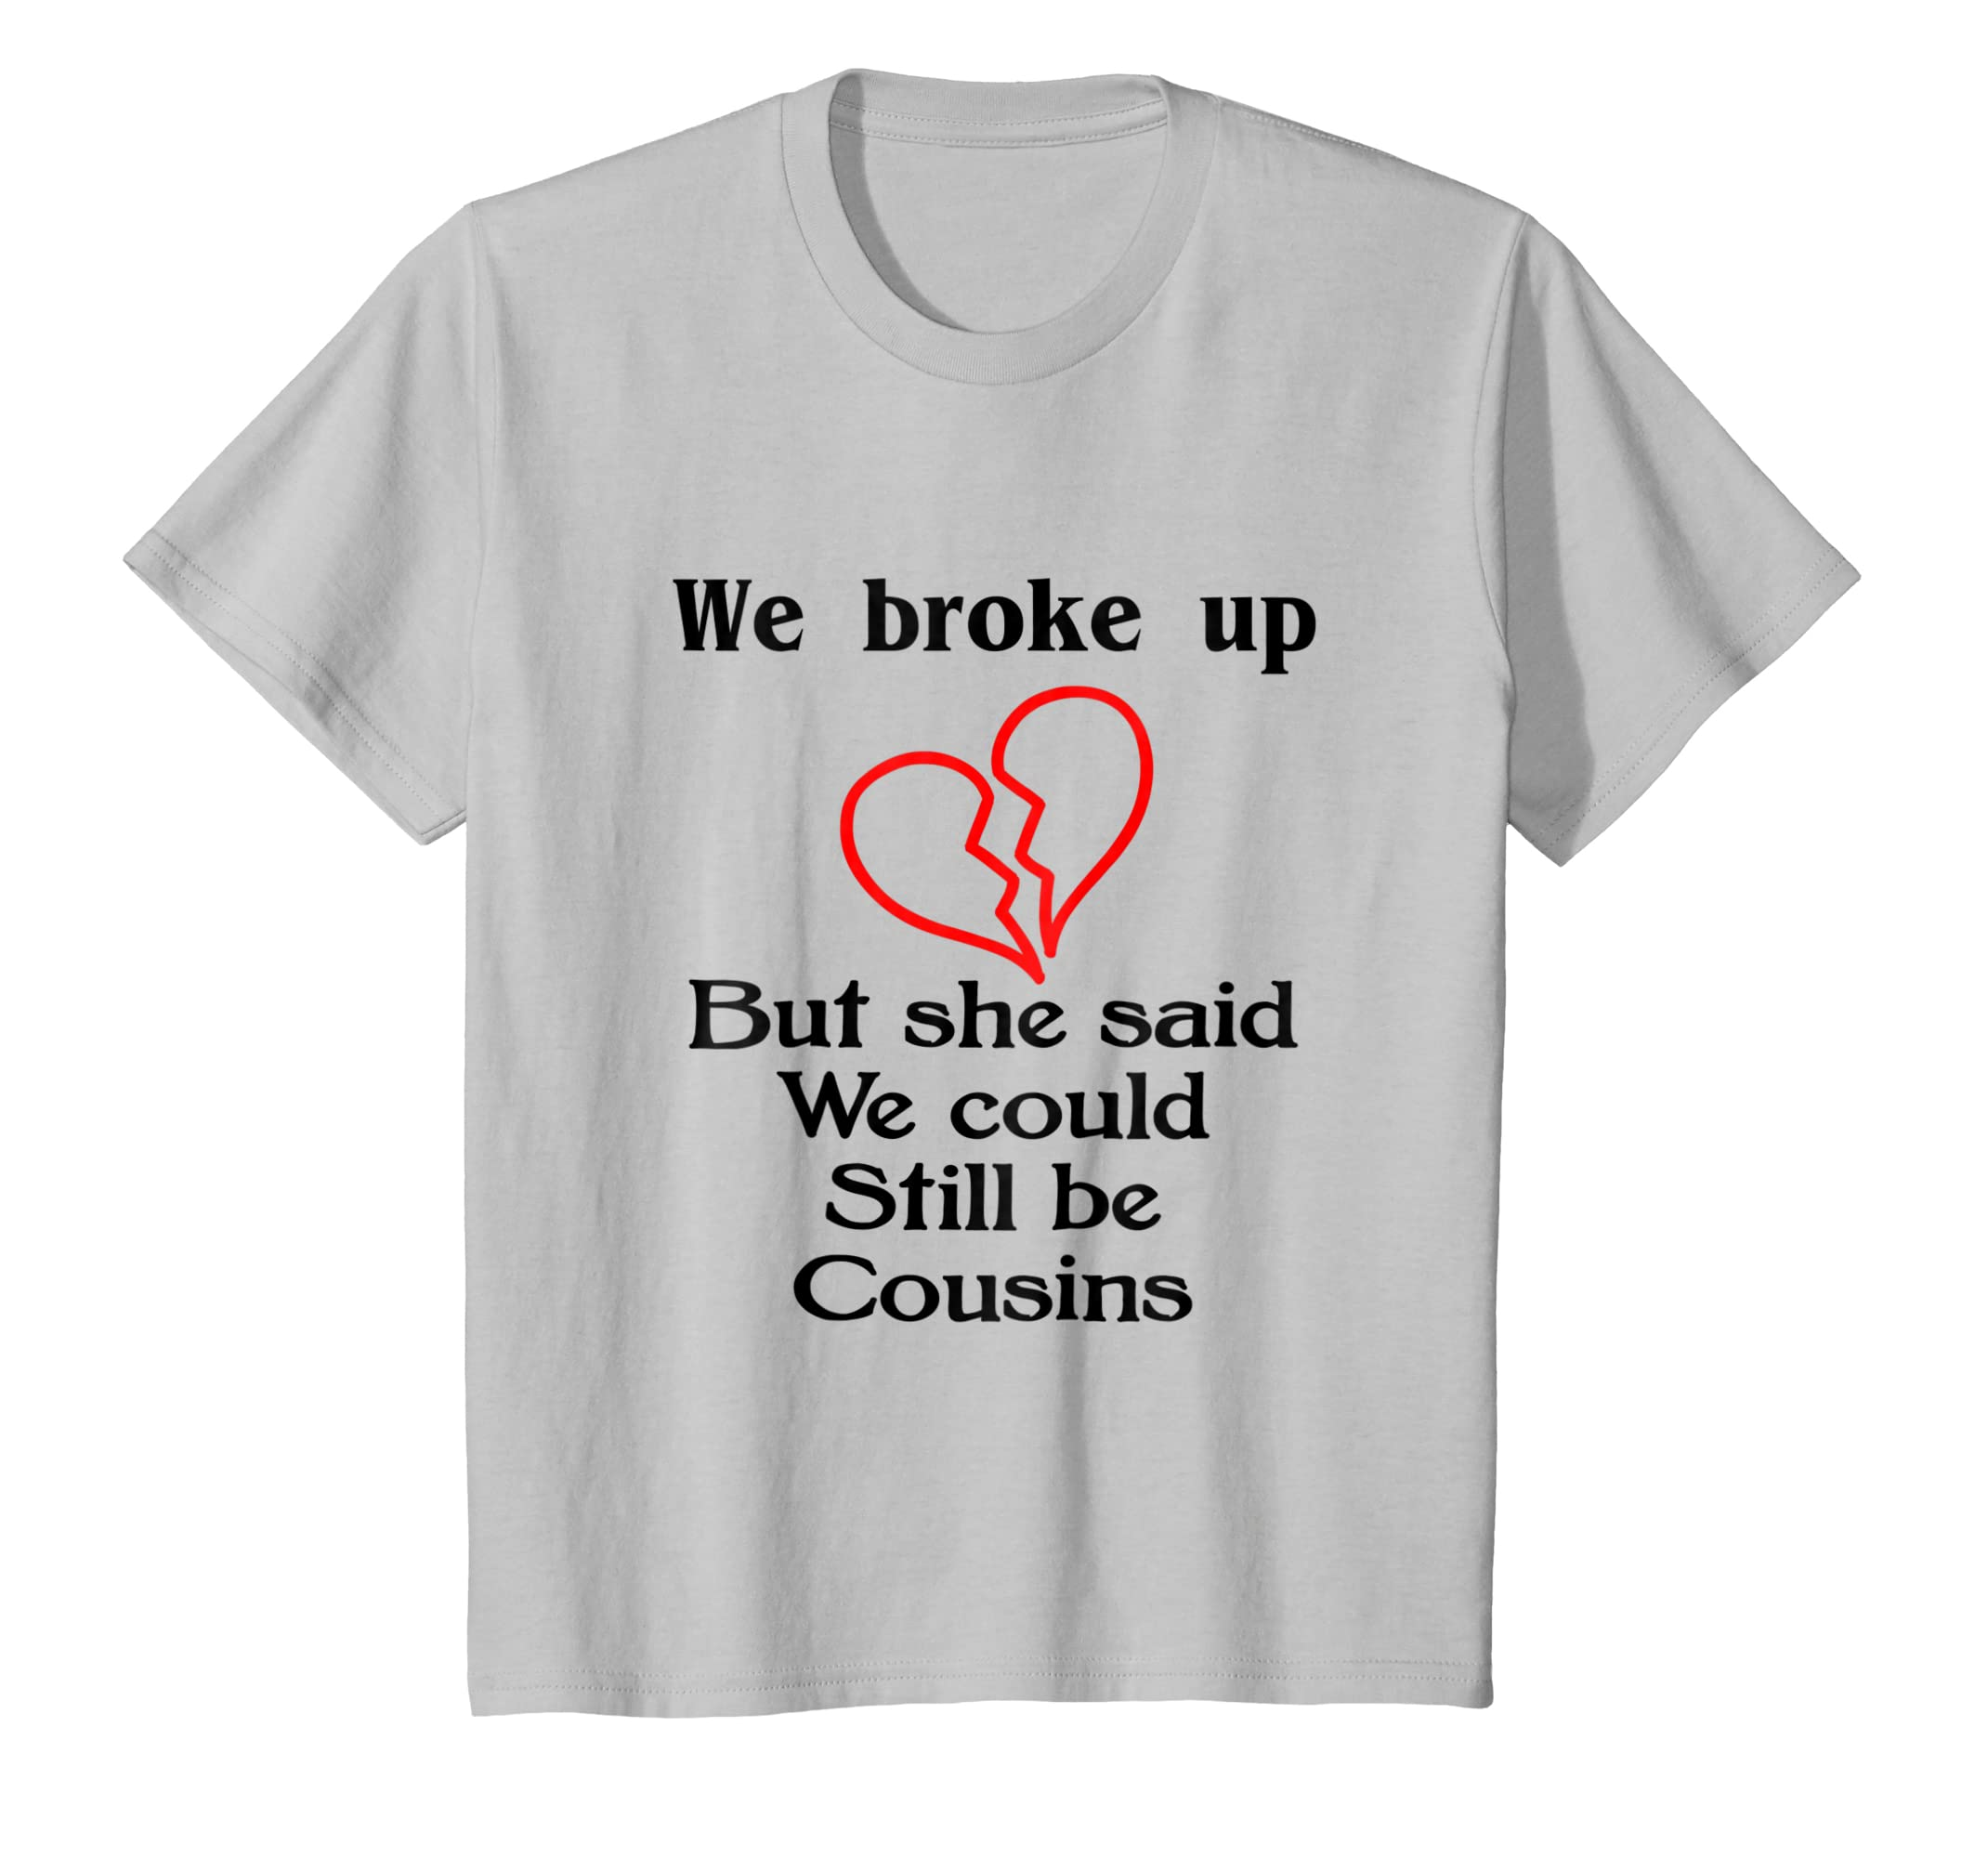 cfcb08c7 We Broke Up But Still Cousins Dating Family T Shirt at Amazon Men's  Clothing store: